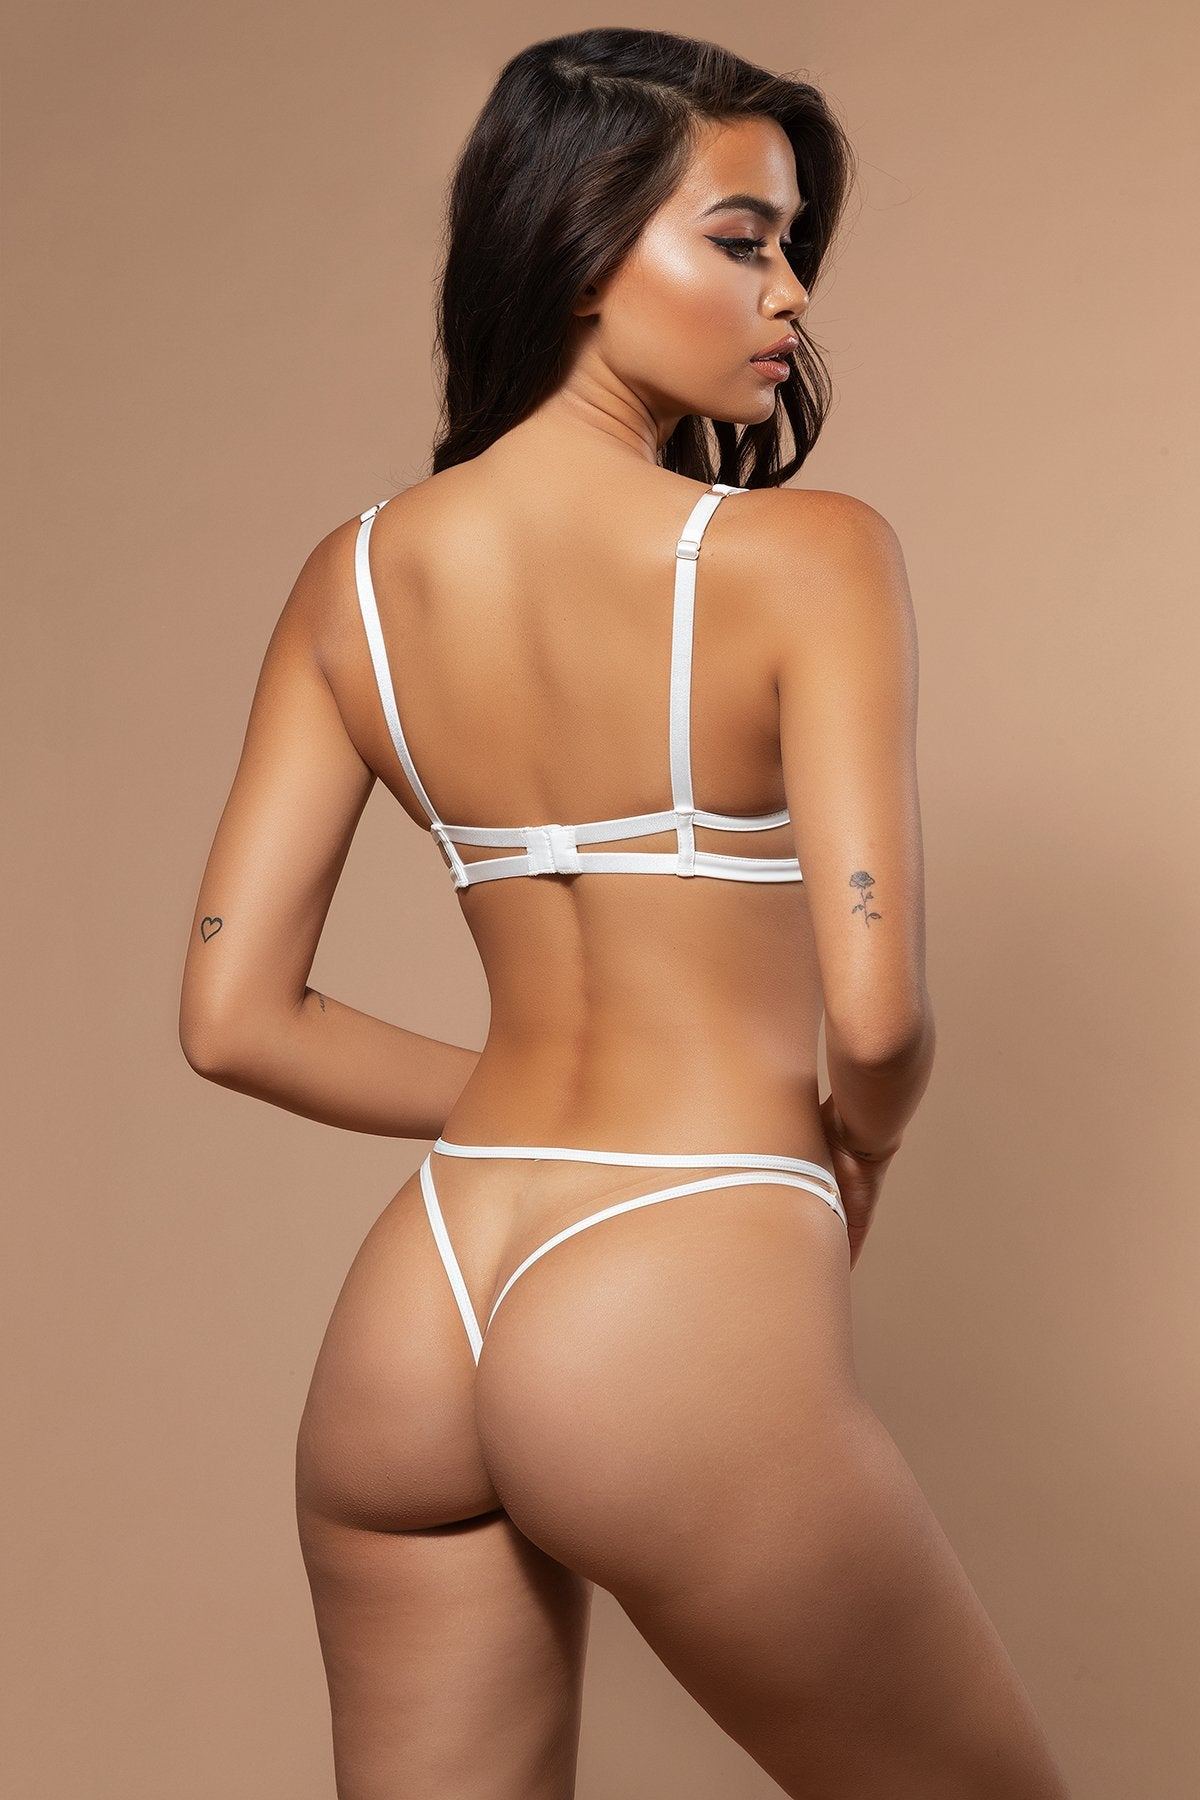 Taylor Mesh & PU Leather Brazilian Briefs - Ivory - MESHKI